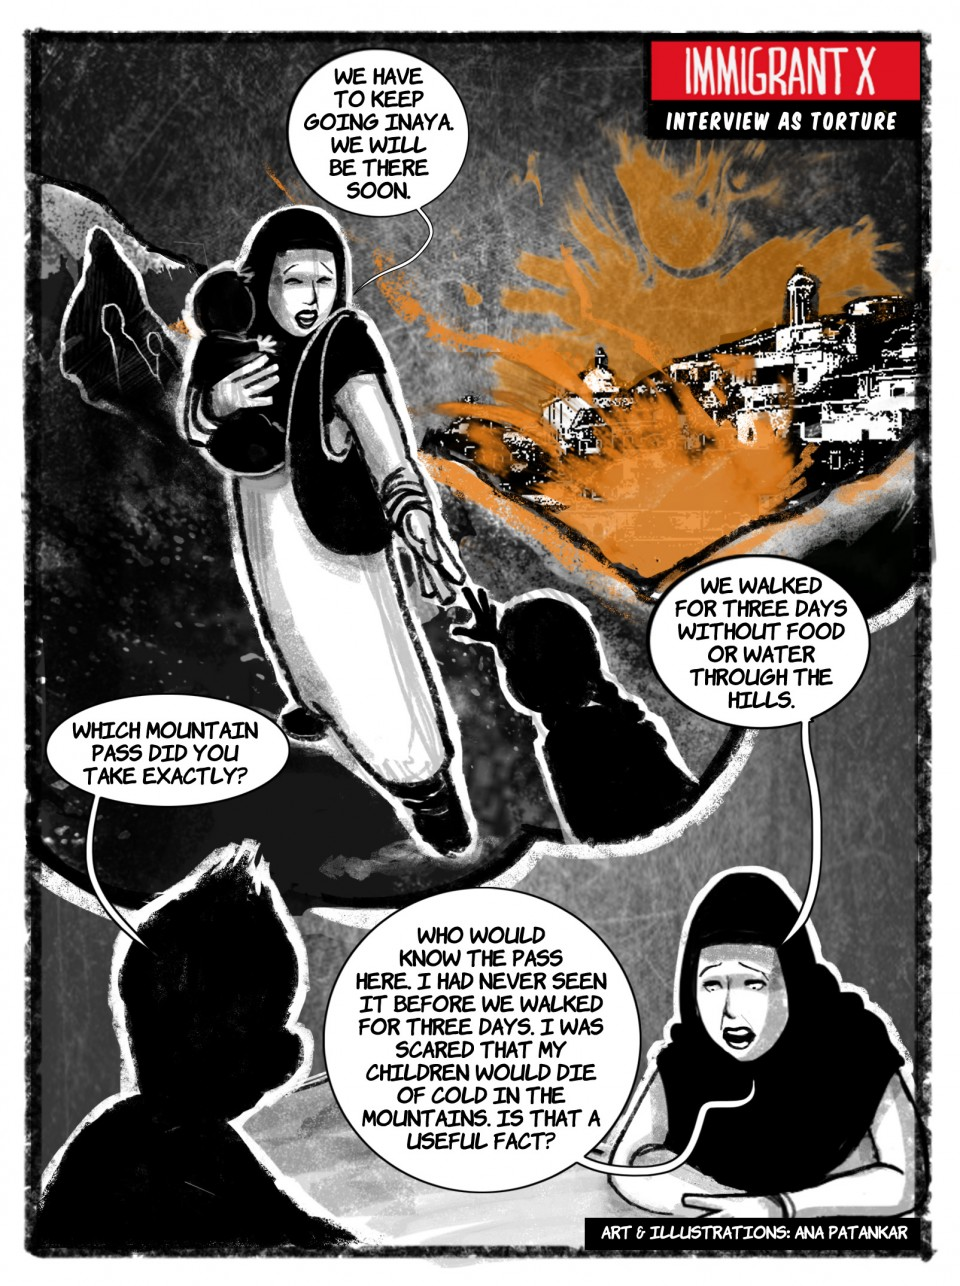 Source: http://www.immigrantx.org/graphic-novel-interview-as-torture/